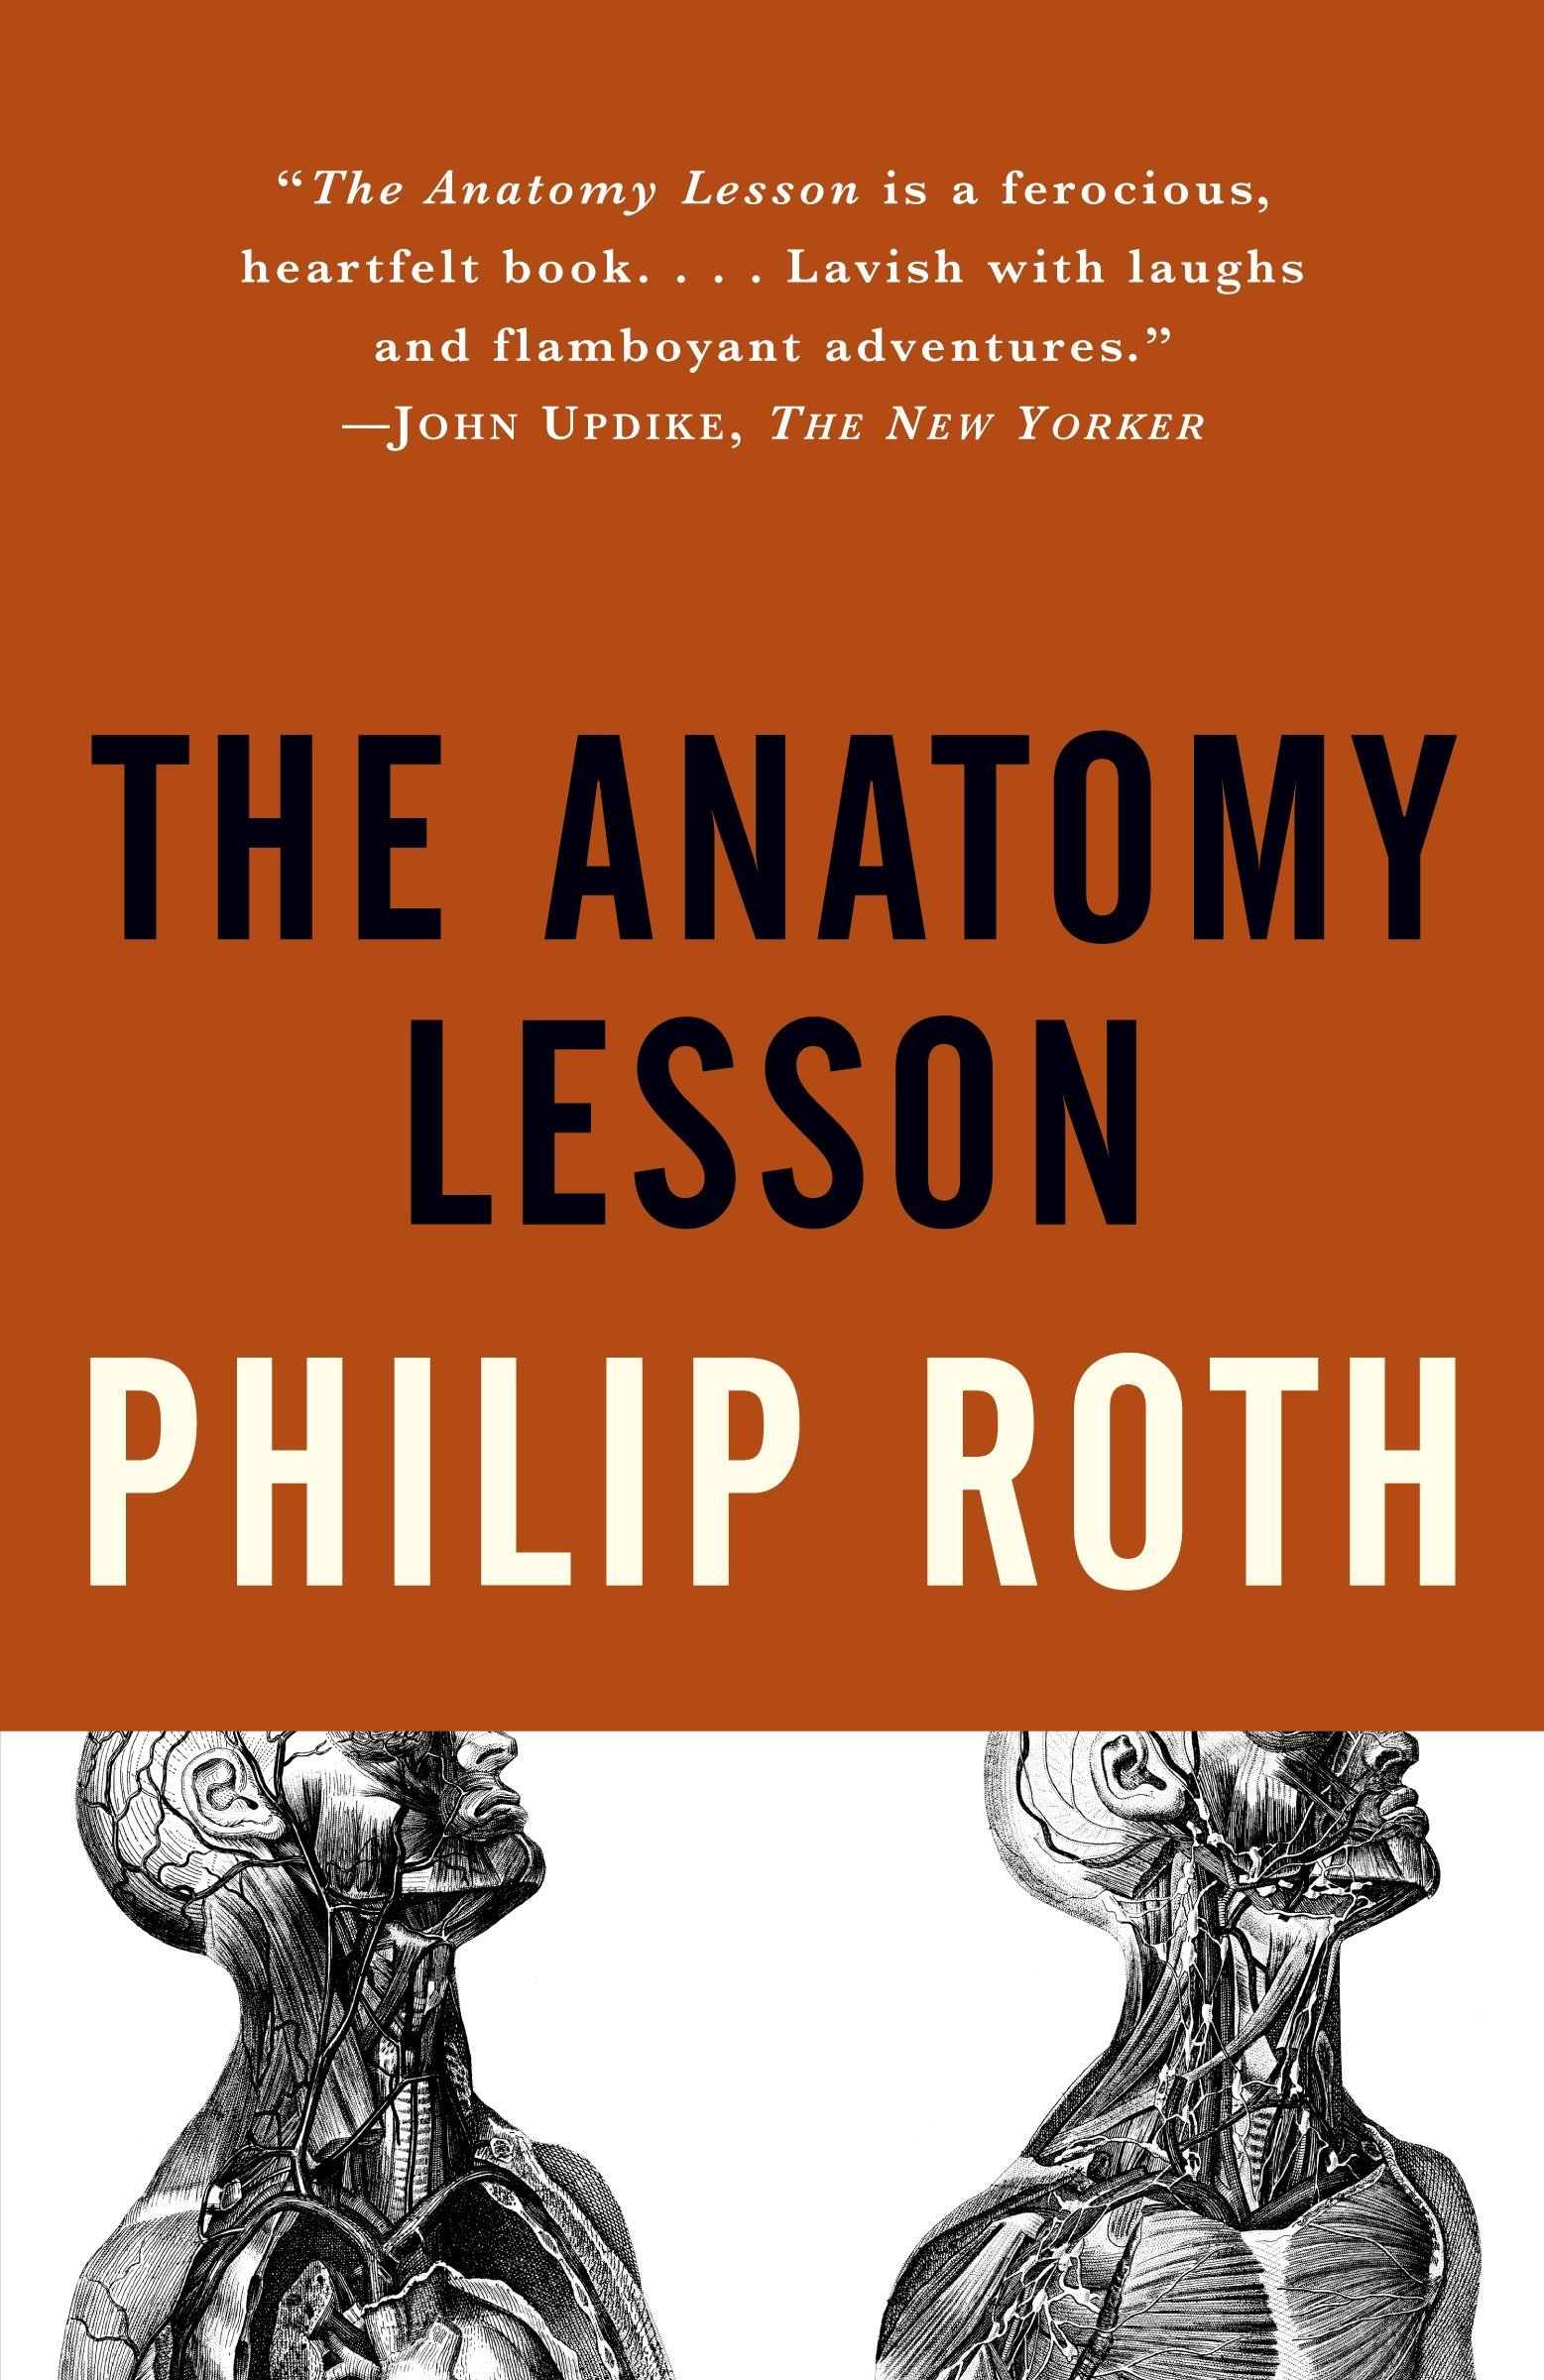 The Anatomy Lesson: Philip Roth: 9780679749028: Amazon.com: Books